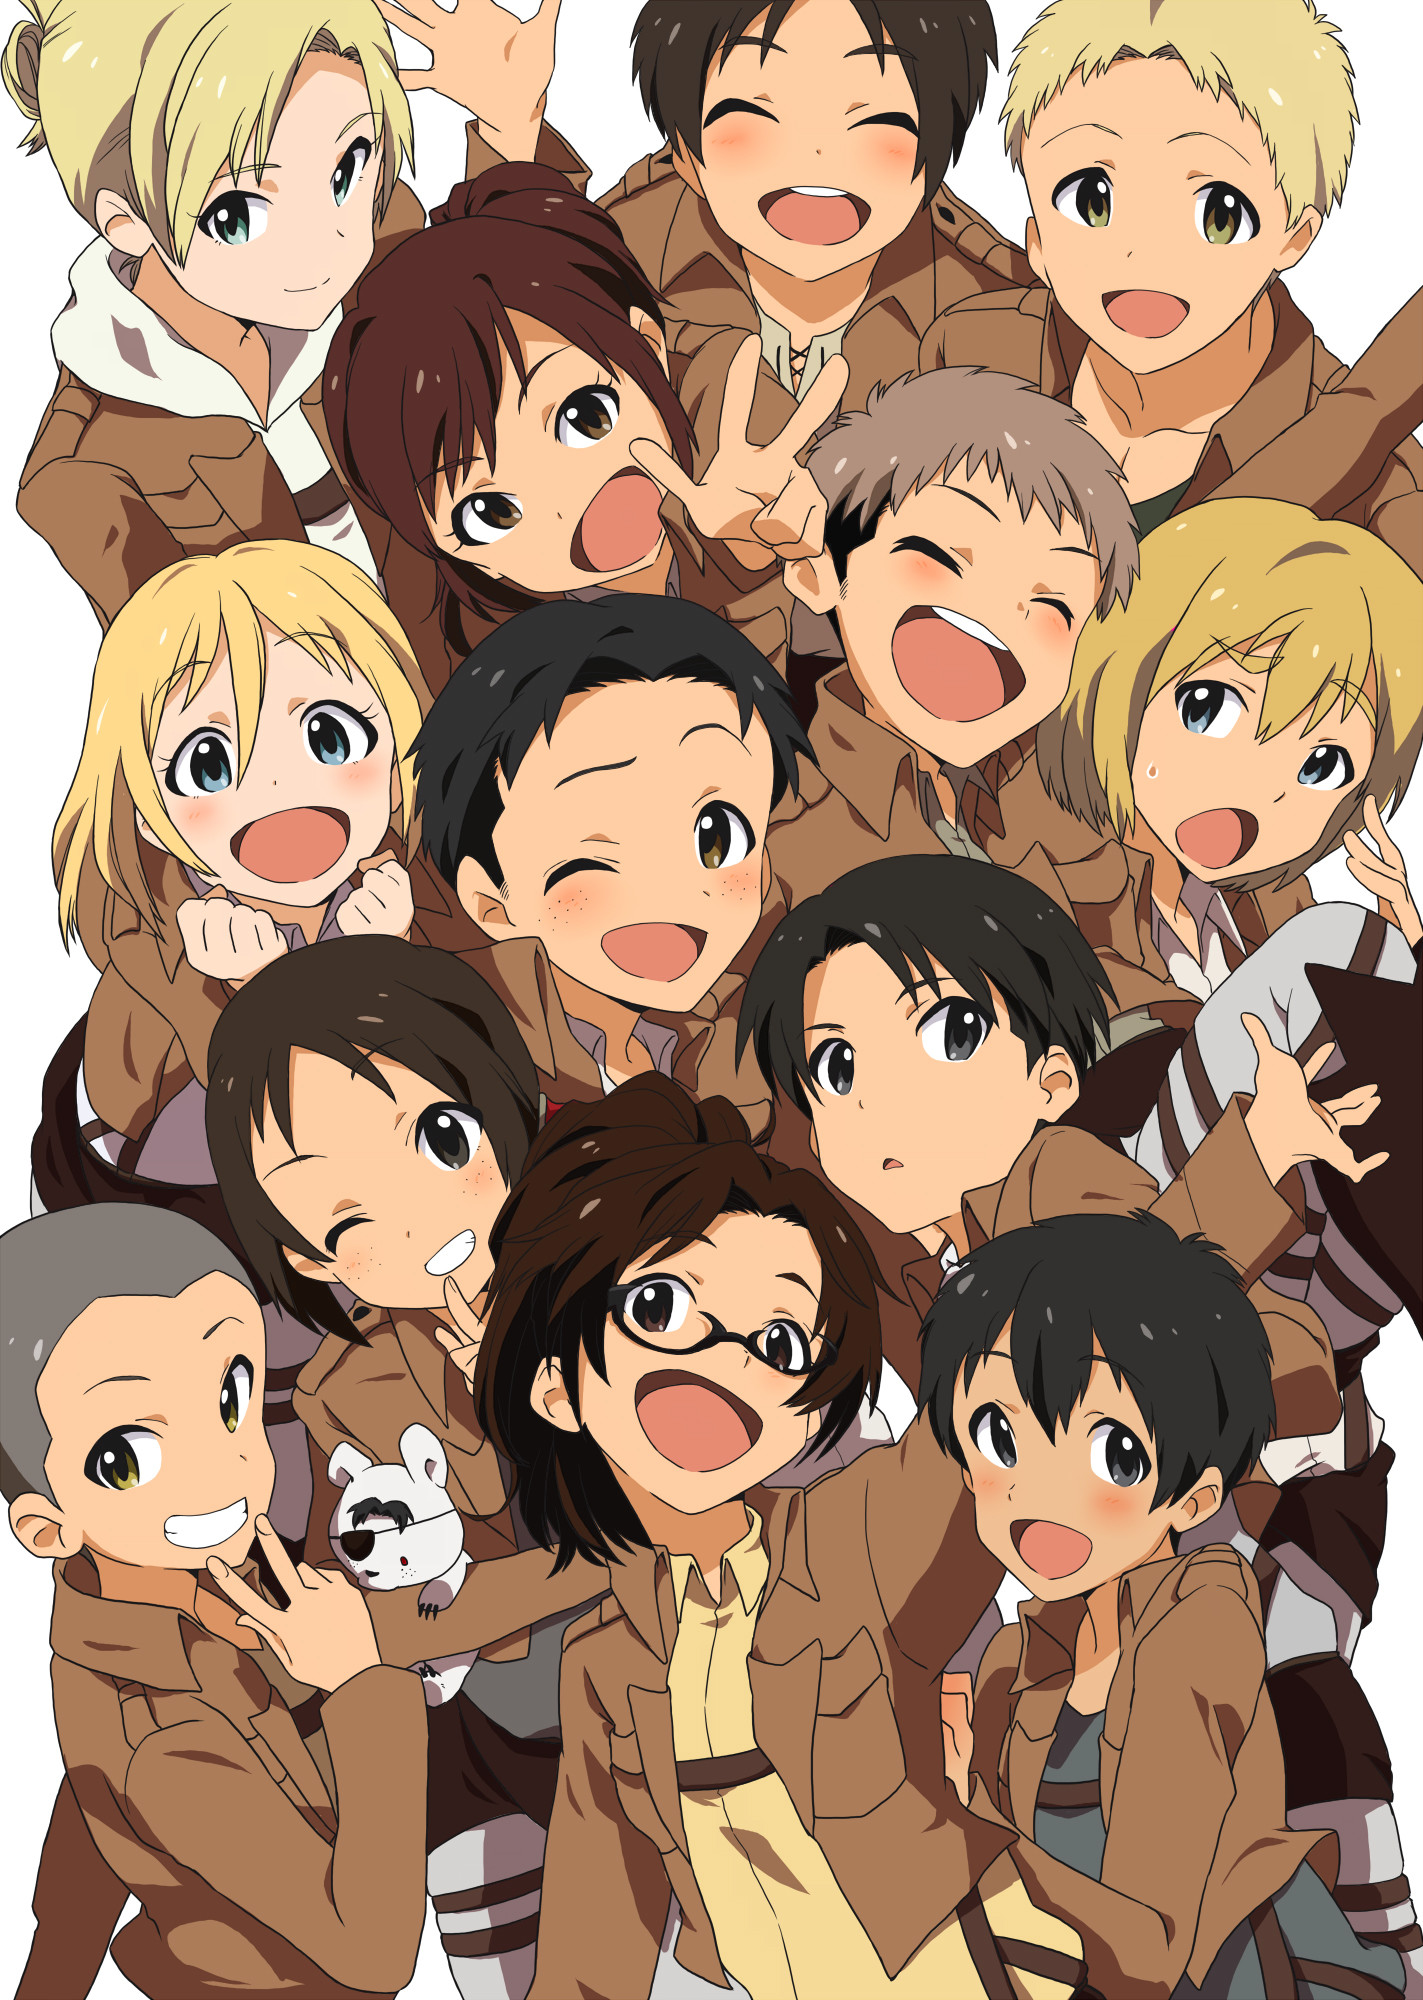 Sizing also makes later remov. Download Aot Wallpaper Chibi Pictures - getallpicture